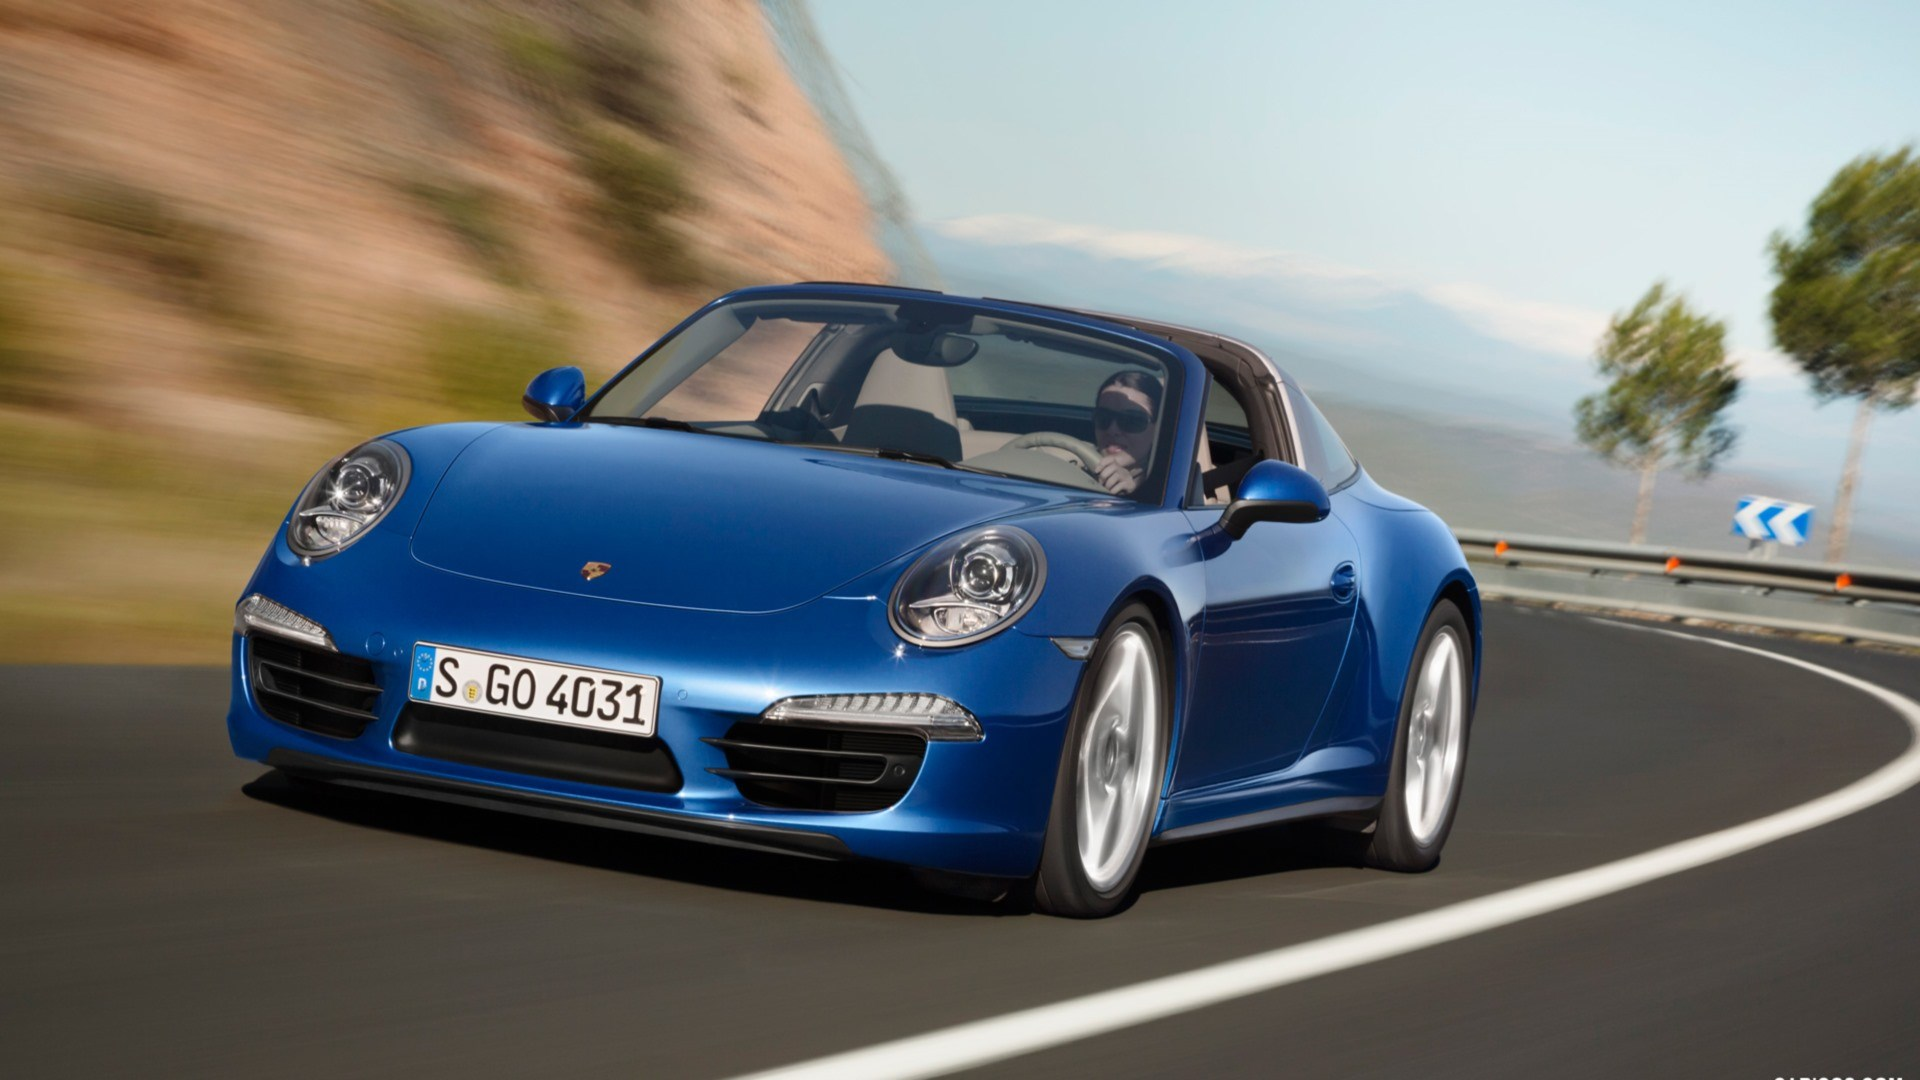 1920x1080-free-and-screensavers-for-porsche-targa-wallpaper-wp380818